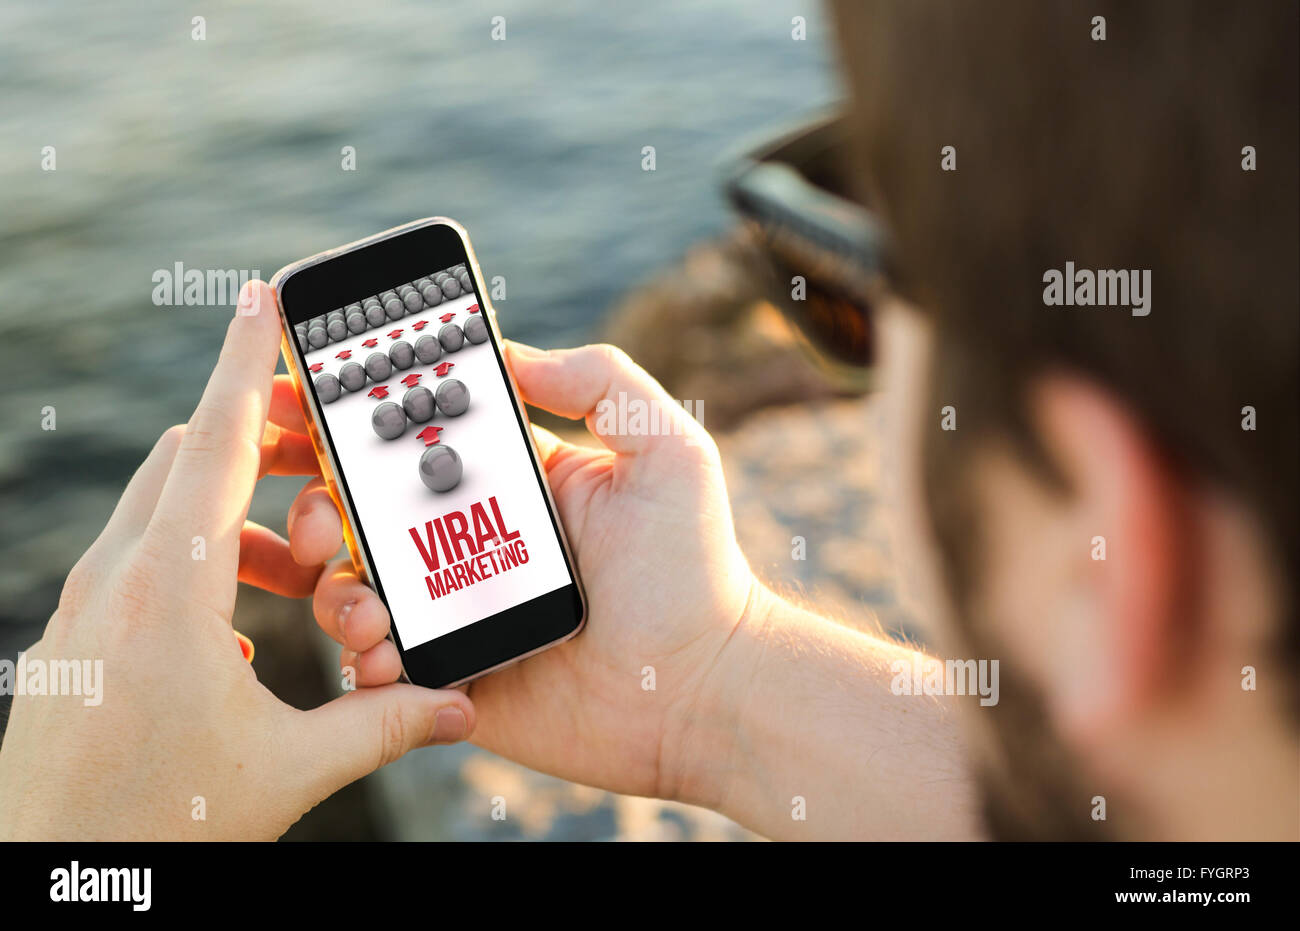 man on the coast using his smartphone showing viral marketing concept. All screen graphics are made up. - Stock Image